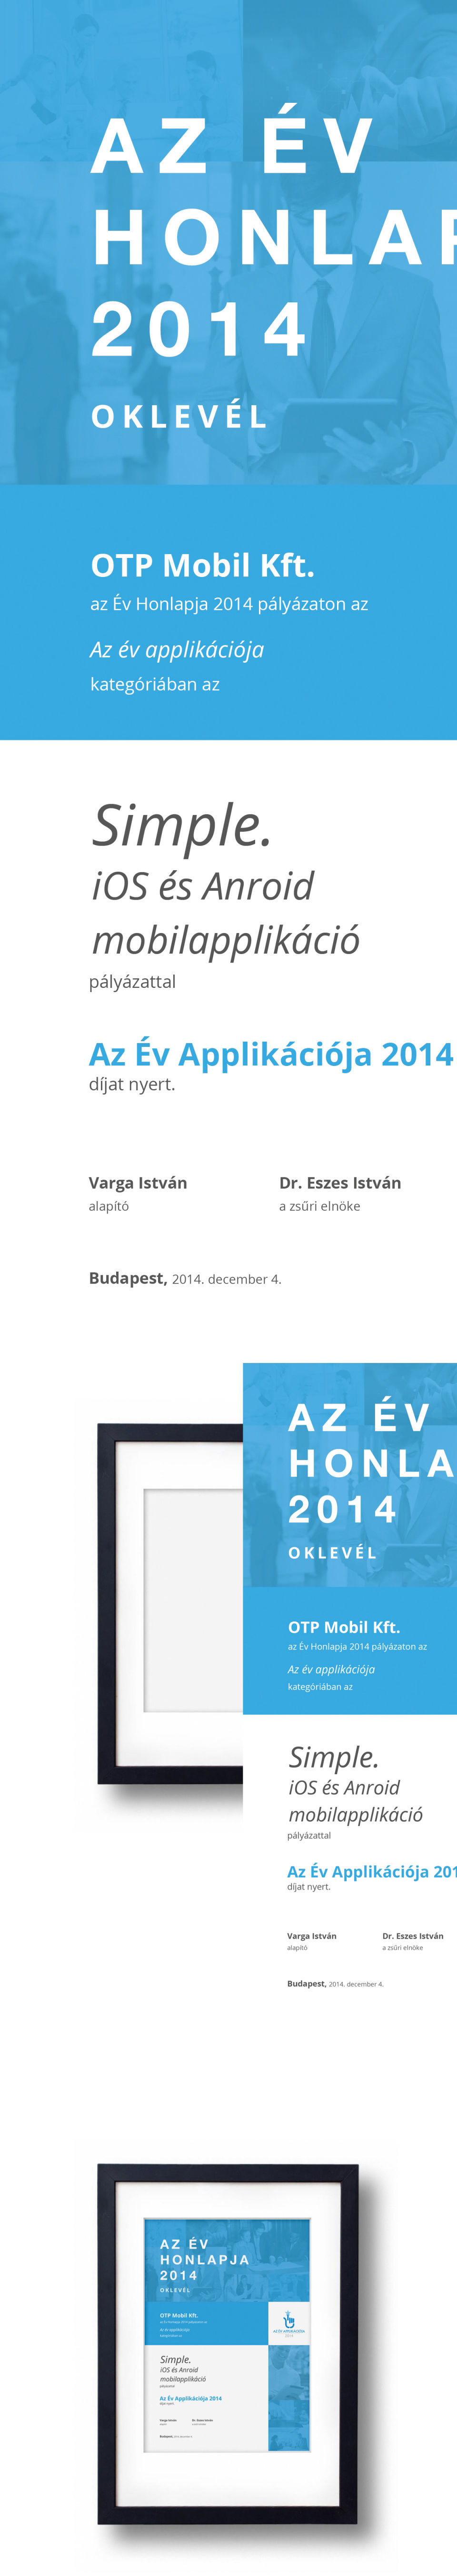 Website of the Year Competition, diploma graphic - 1 by erosbalazs